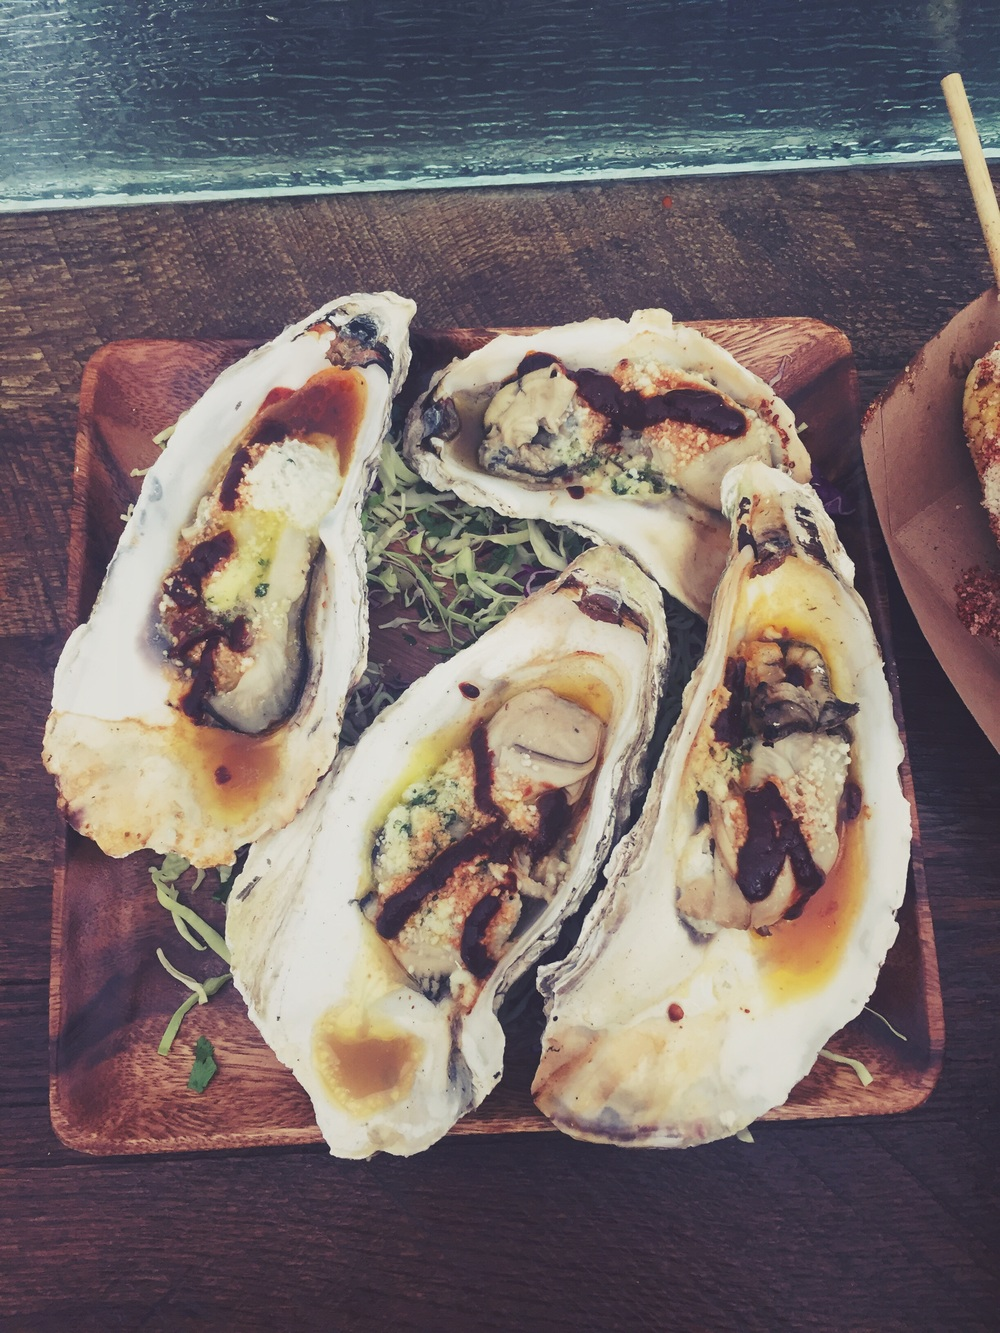 Don't forget to try the BBQ Oysters. Insanely good!